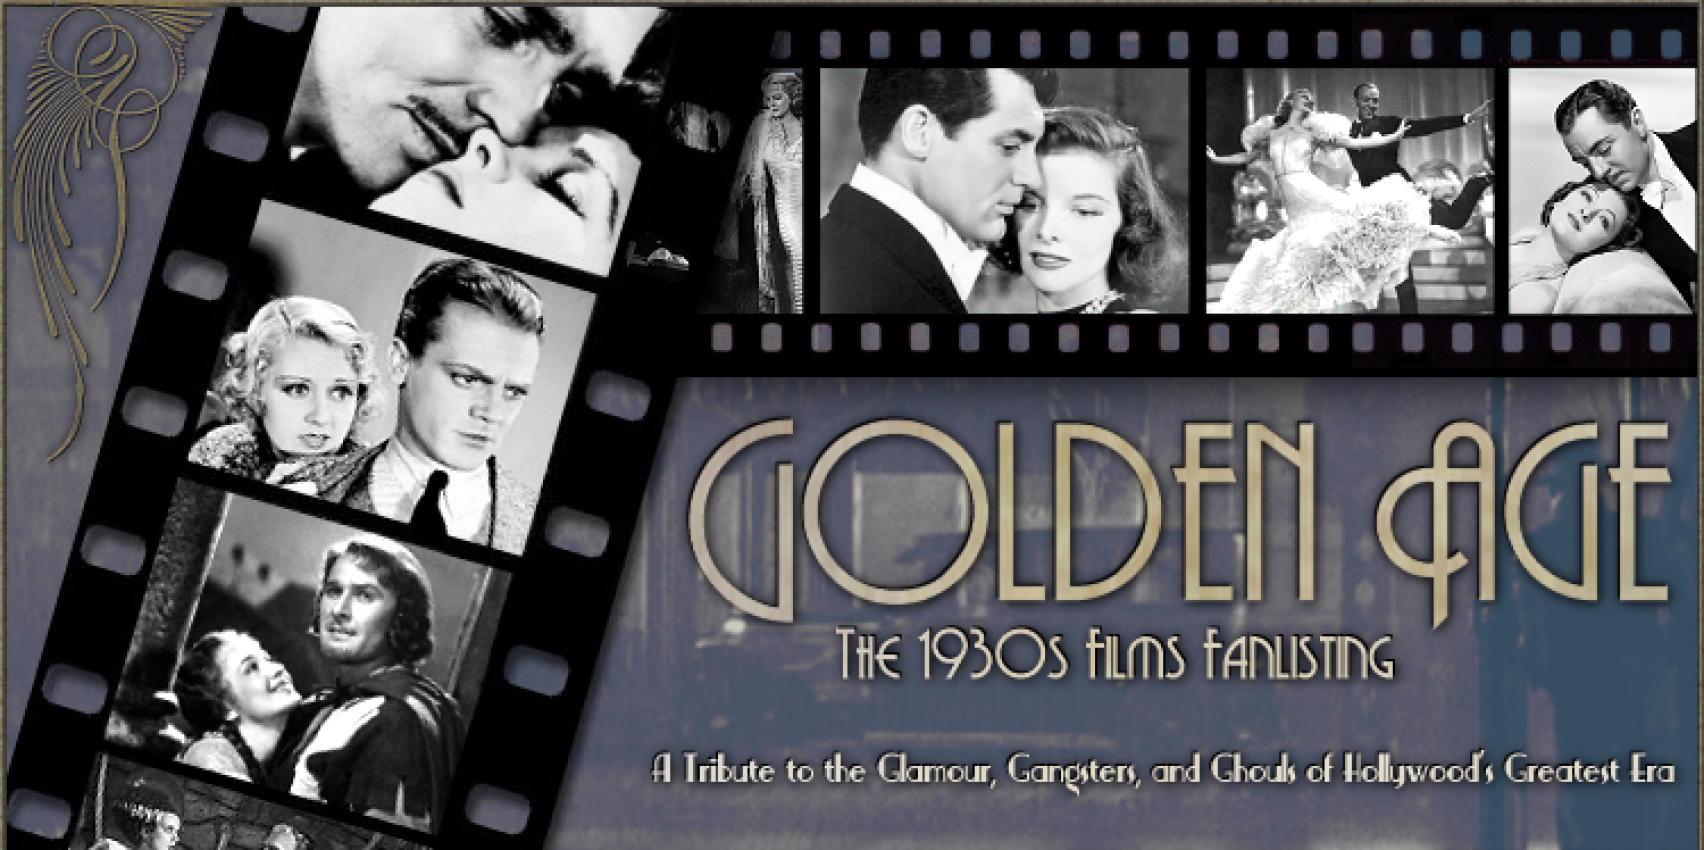 Movie in the 1930s